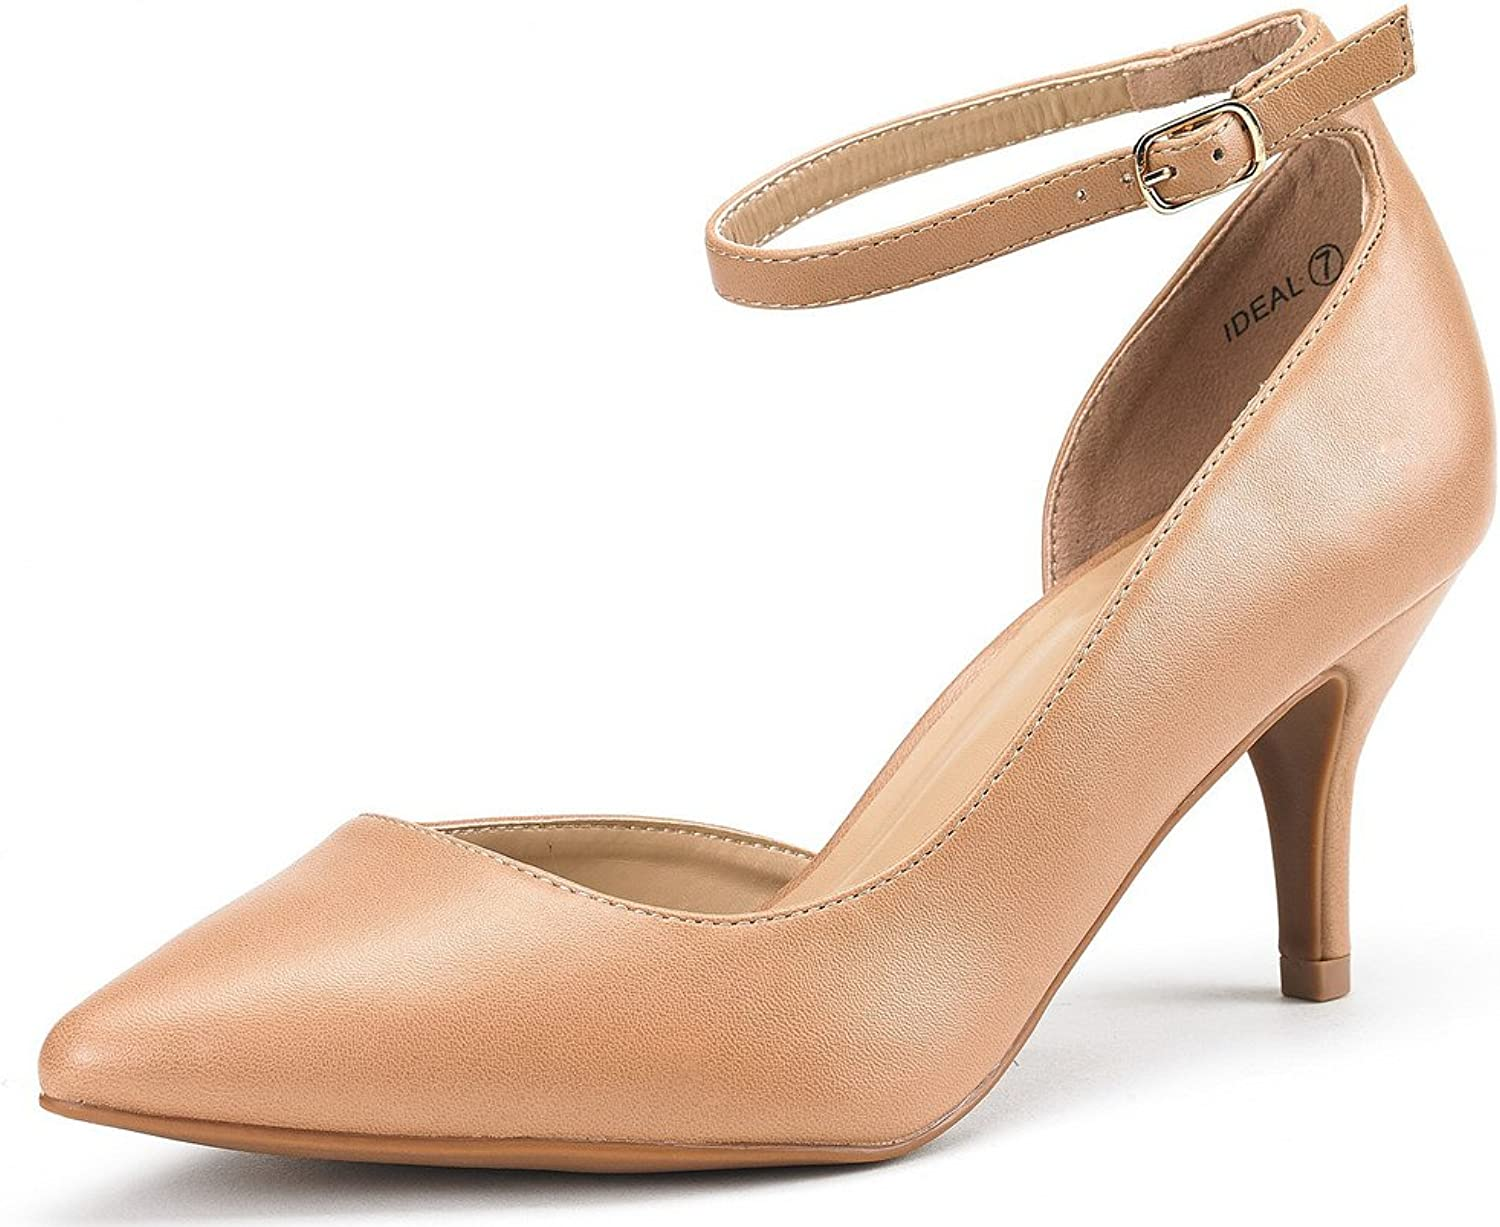 DREAM PAIRS Ideal Women's Low Heel Ankle Strap D'Orsay Pointed Toe Pump shoes